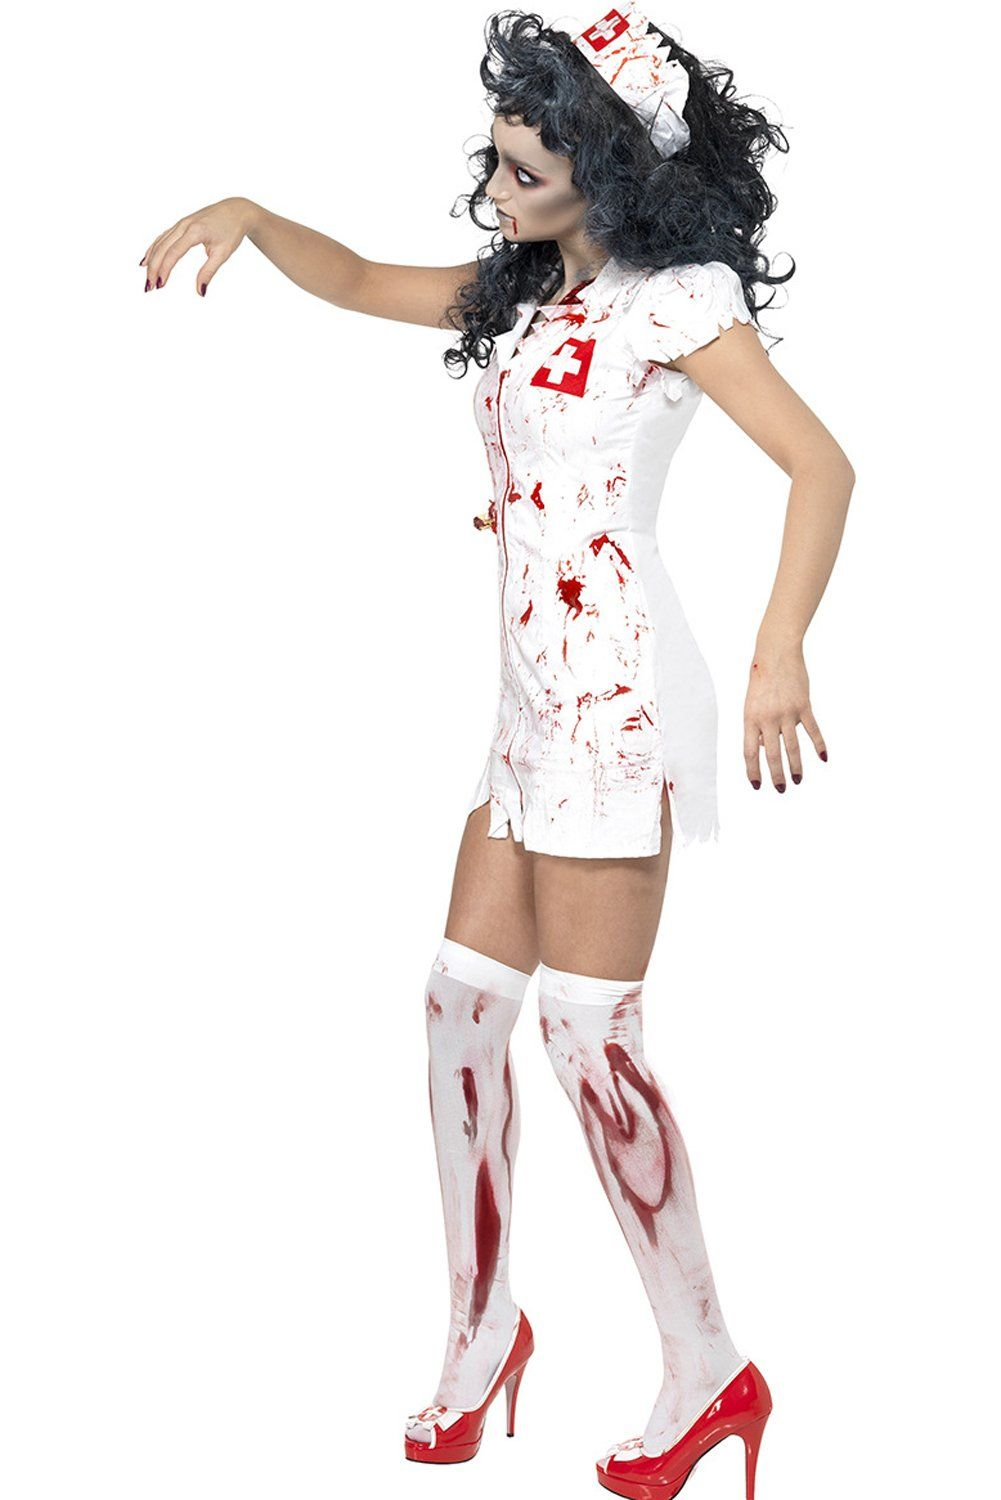 Ladies Bloody Nurse Zombie Halloween Fancy Dress Costume Party Outfits Cosplay